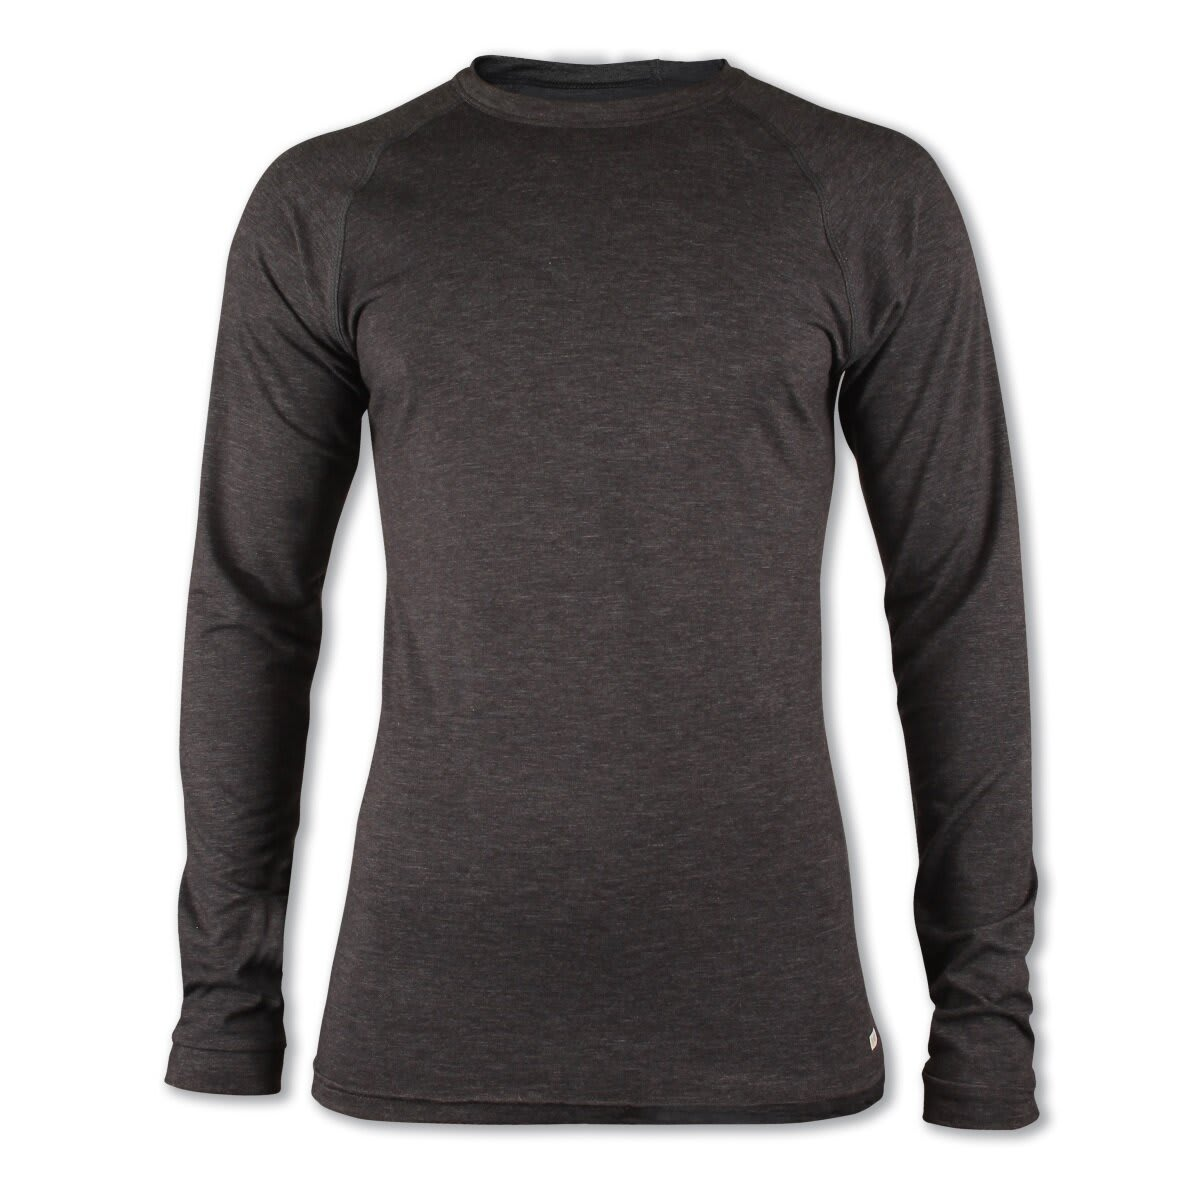 First Ascent Men's Viloft Thermal Long-Sleeve Top